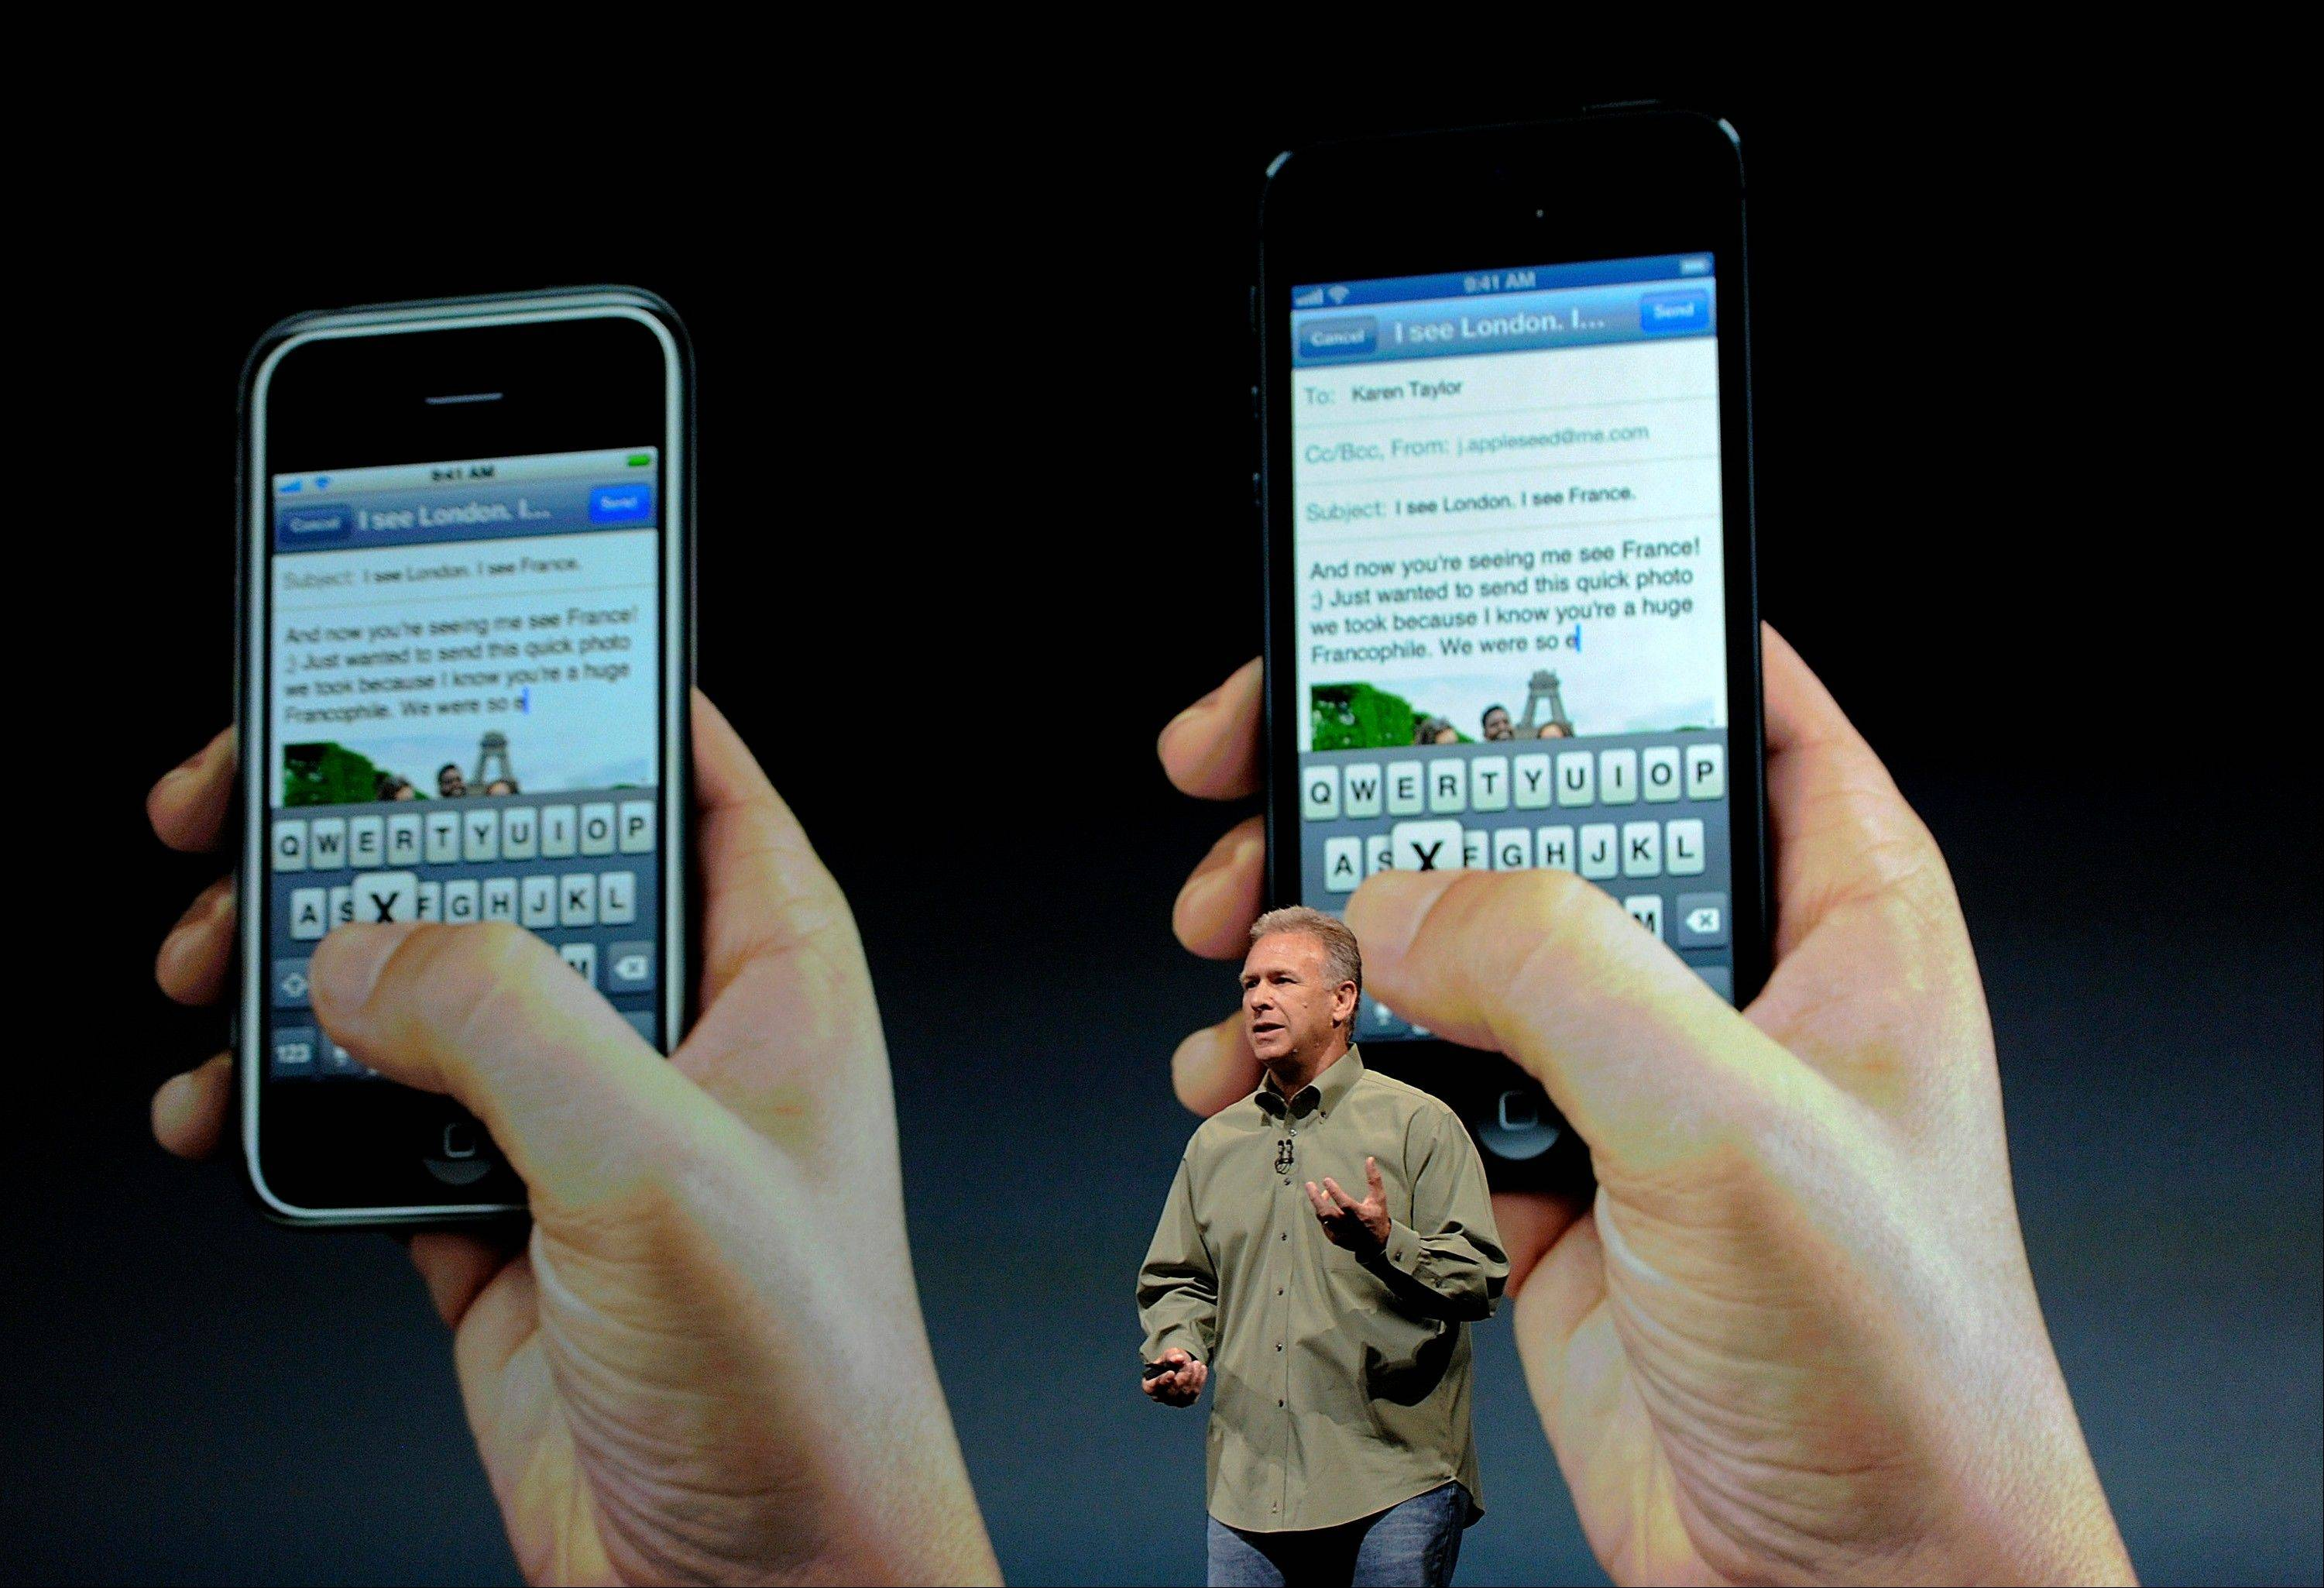 "Philip ""Phil"" Schiller, senior vice president of worldwide marketing at Apple Inc., speaks during an event in San Francisco, California, U.S., on Wednesday, Sept. 12, 2012."